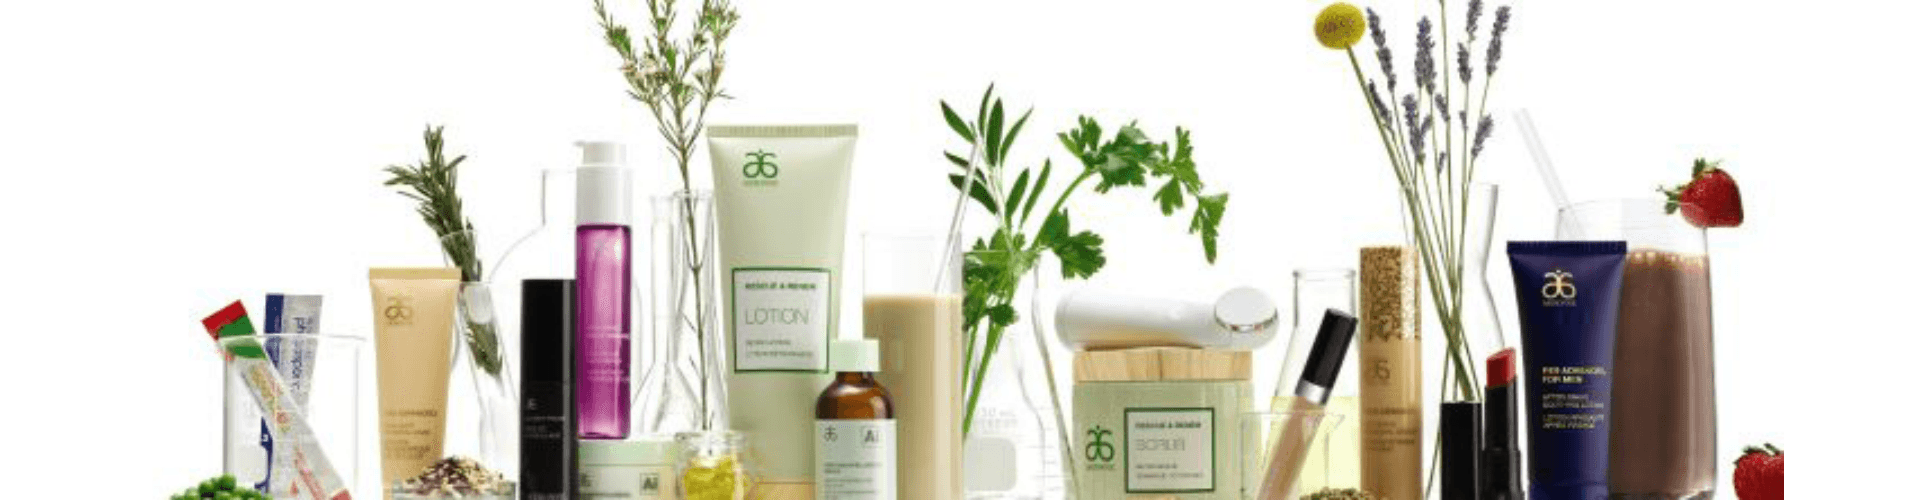 Arbonne-new-products-all